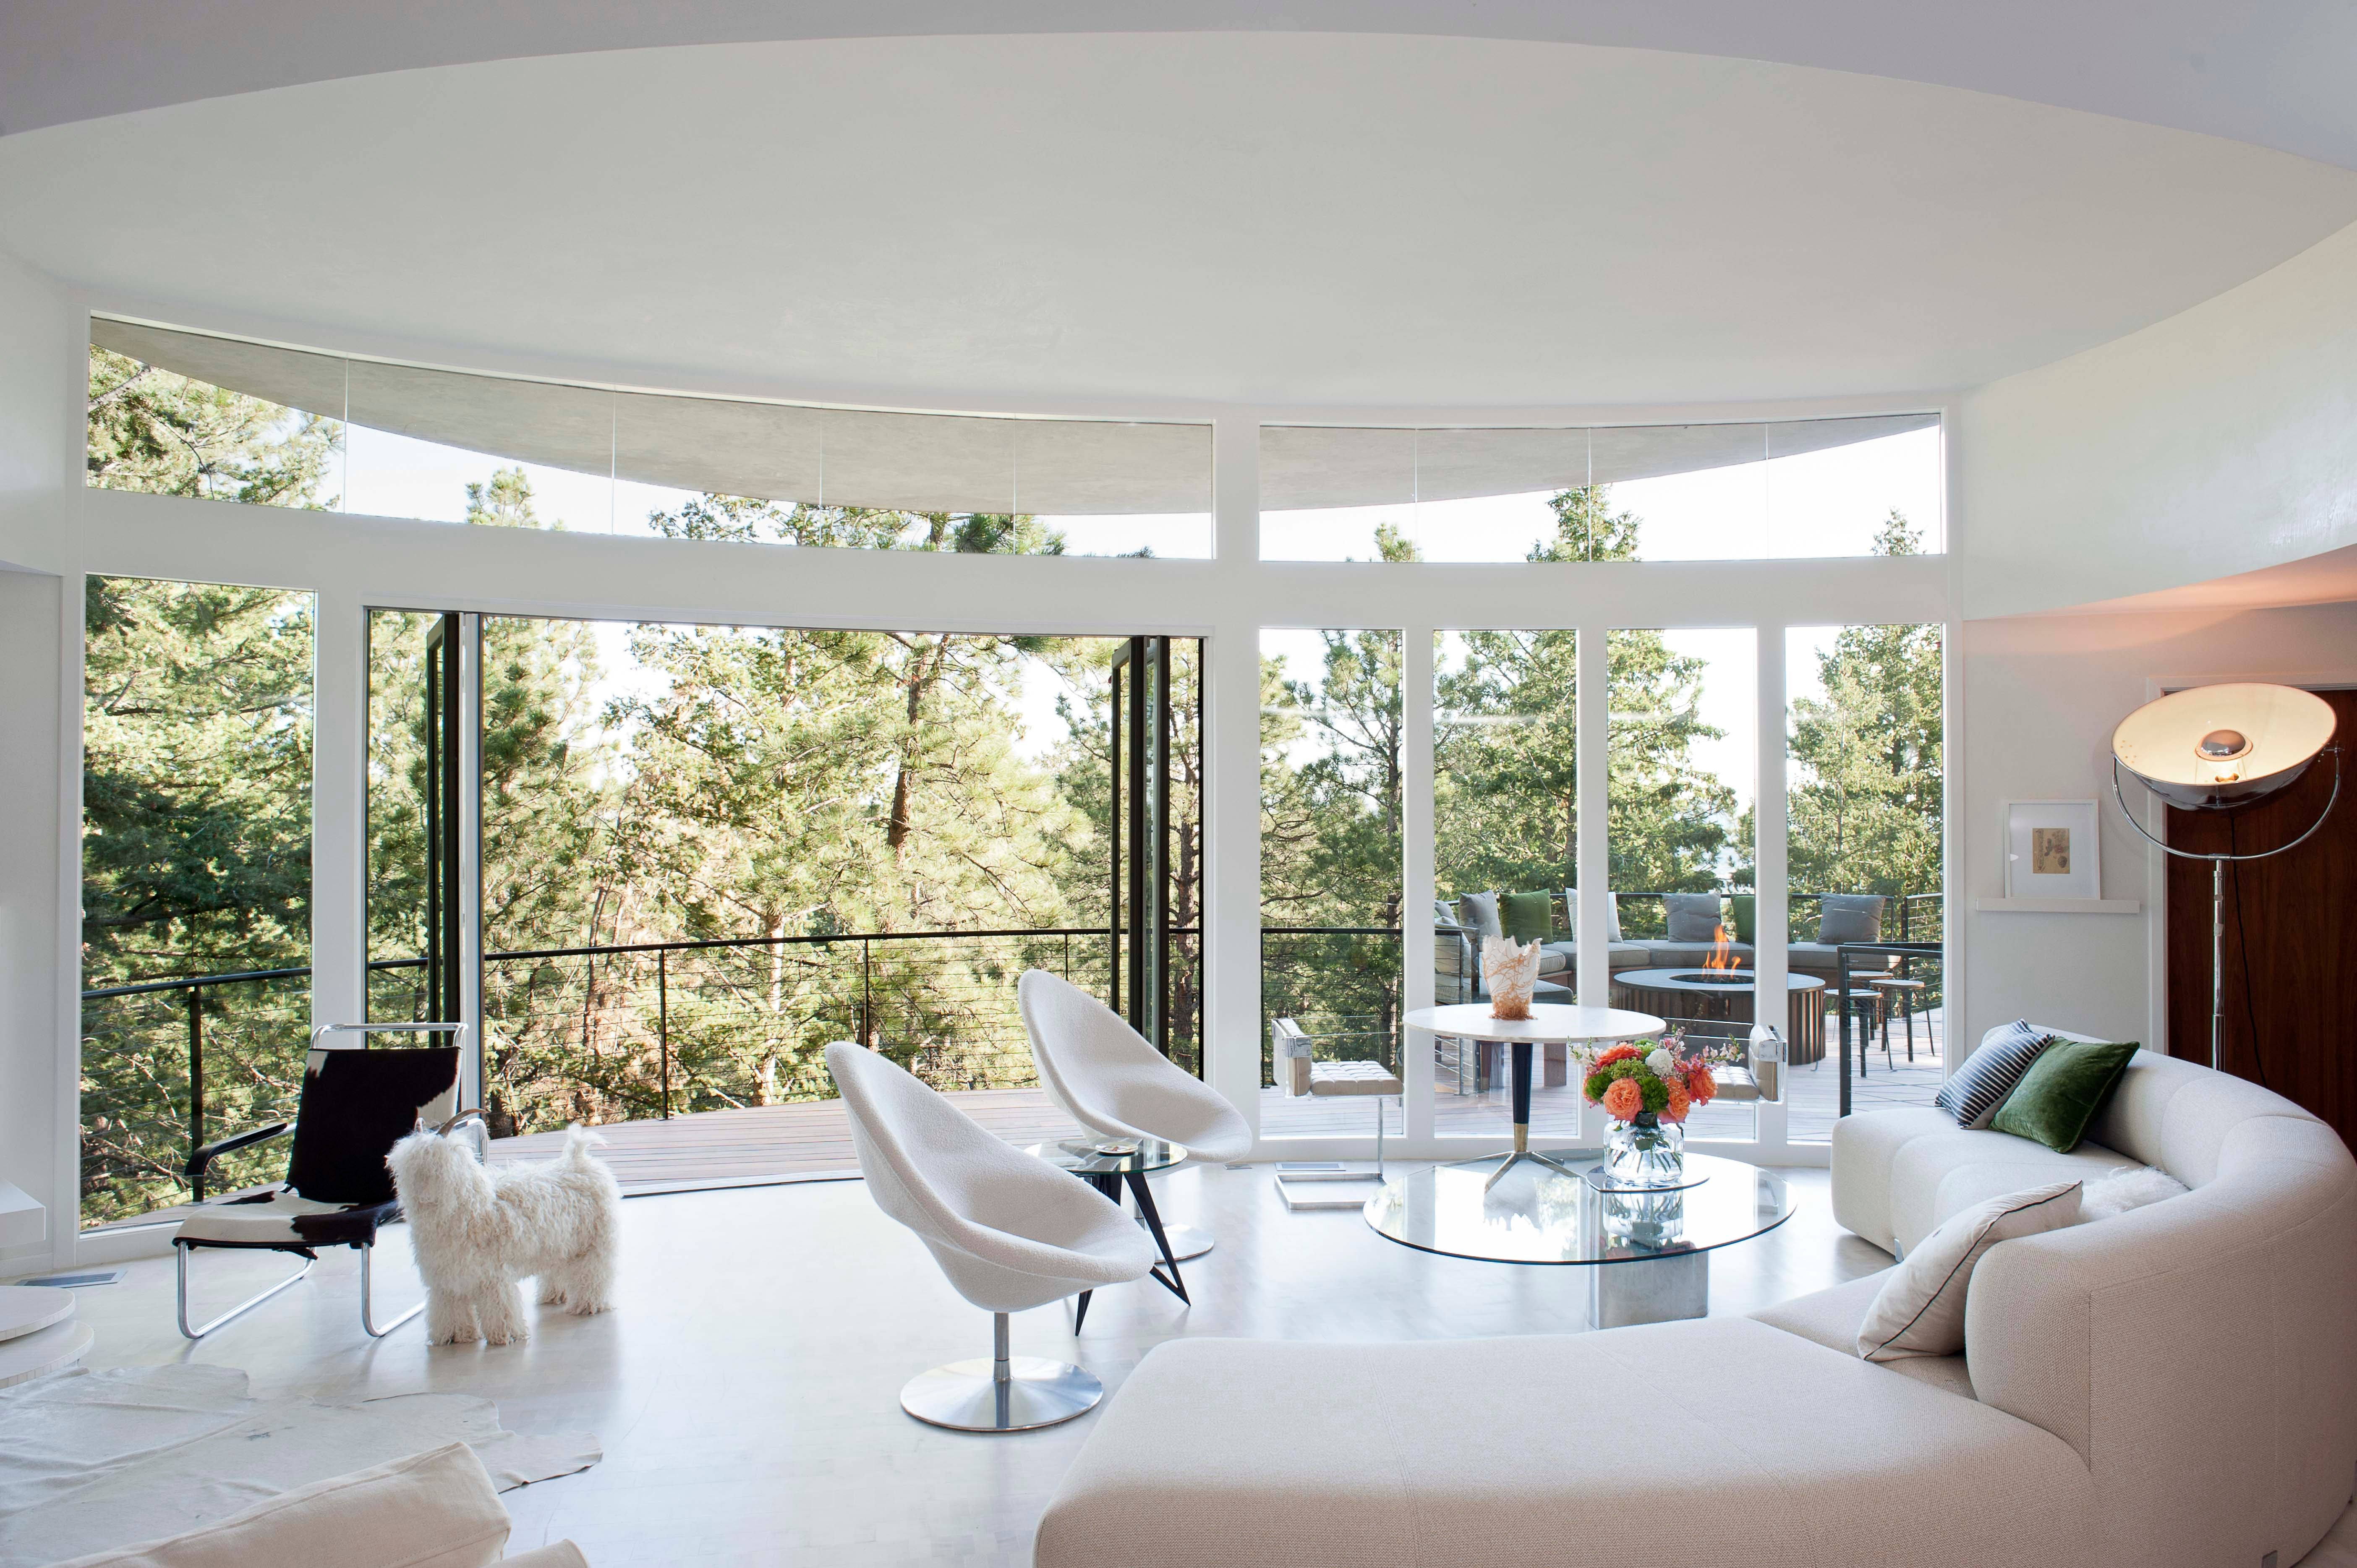 Round house by emily summers design on 1stdibs - Interior design colorado springs ...